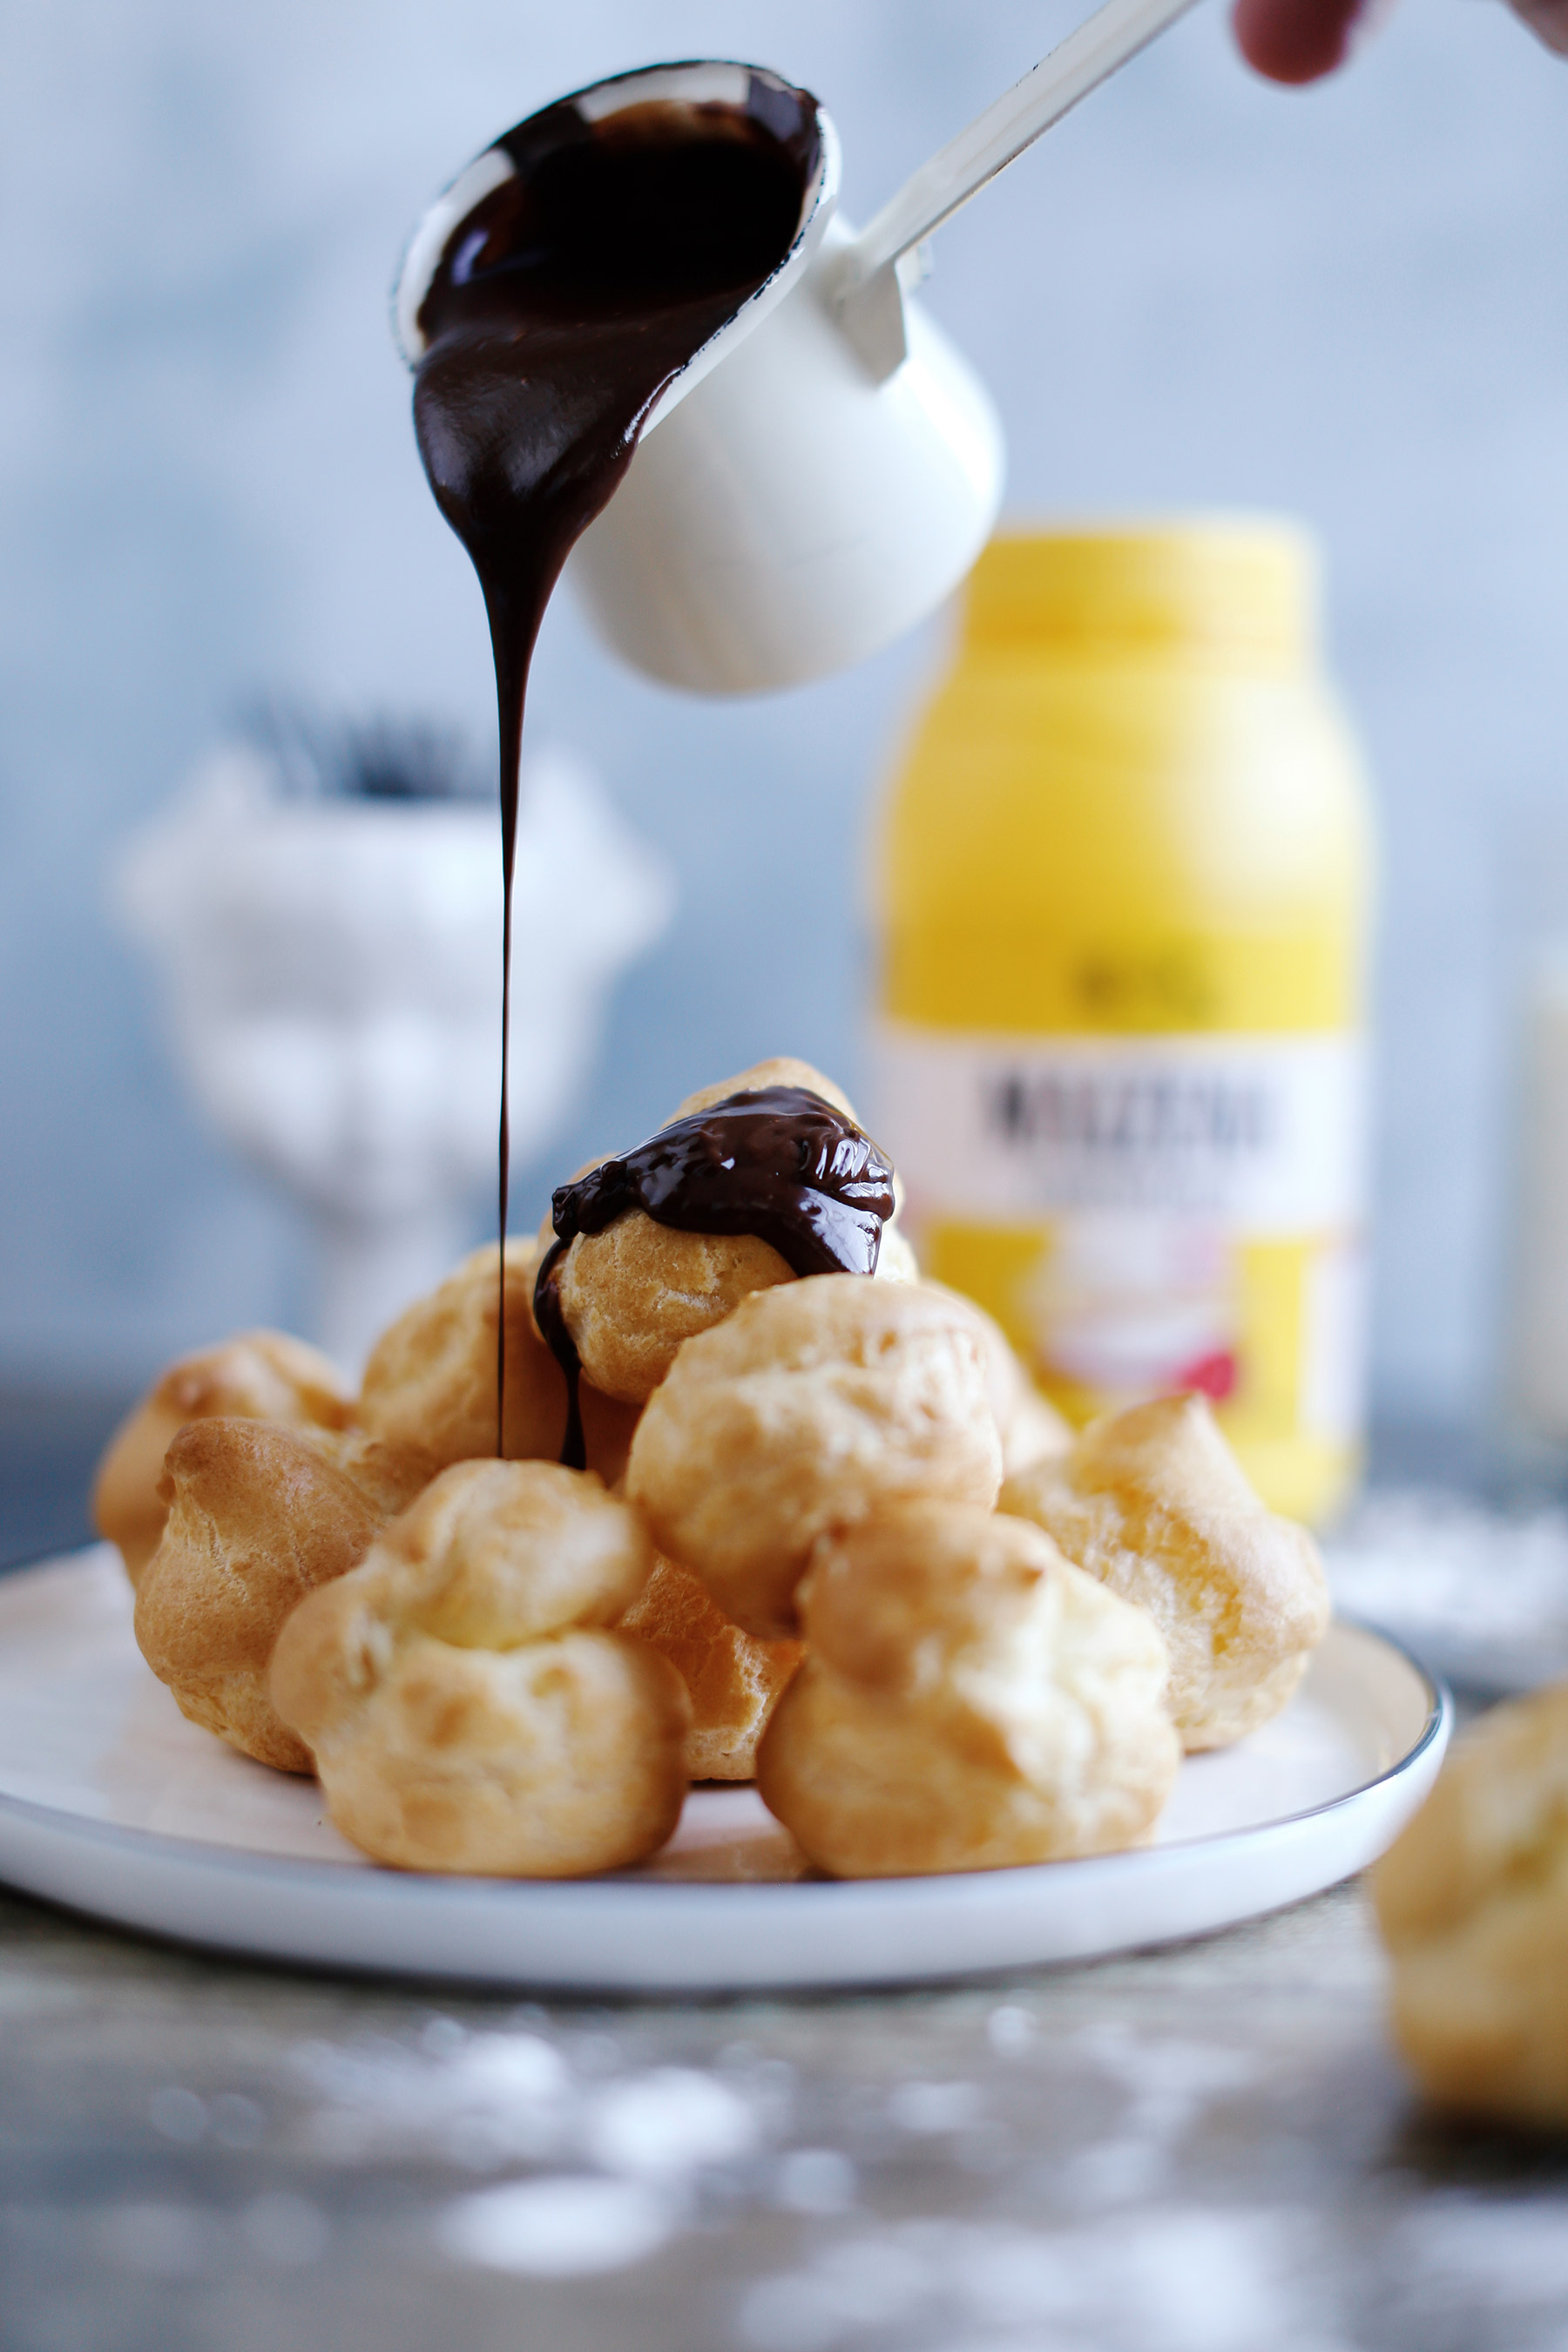 Profiteroles-filled-with-creme-patissiere-topped-with-chocolate3